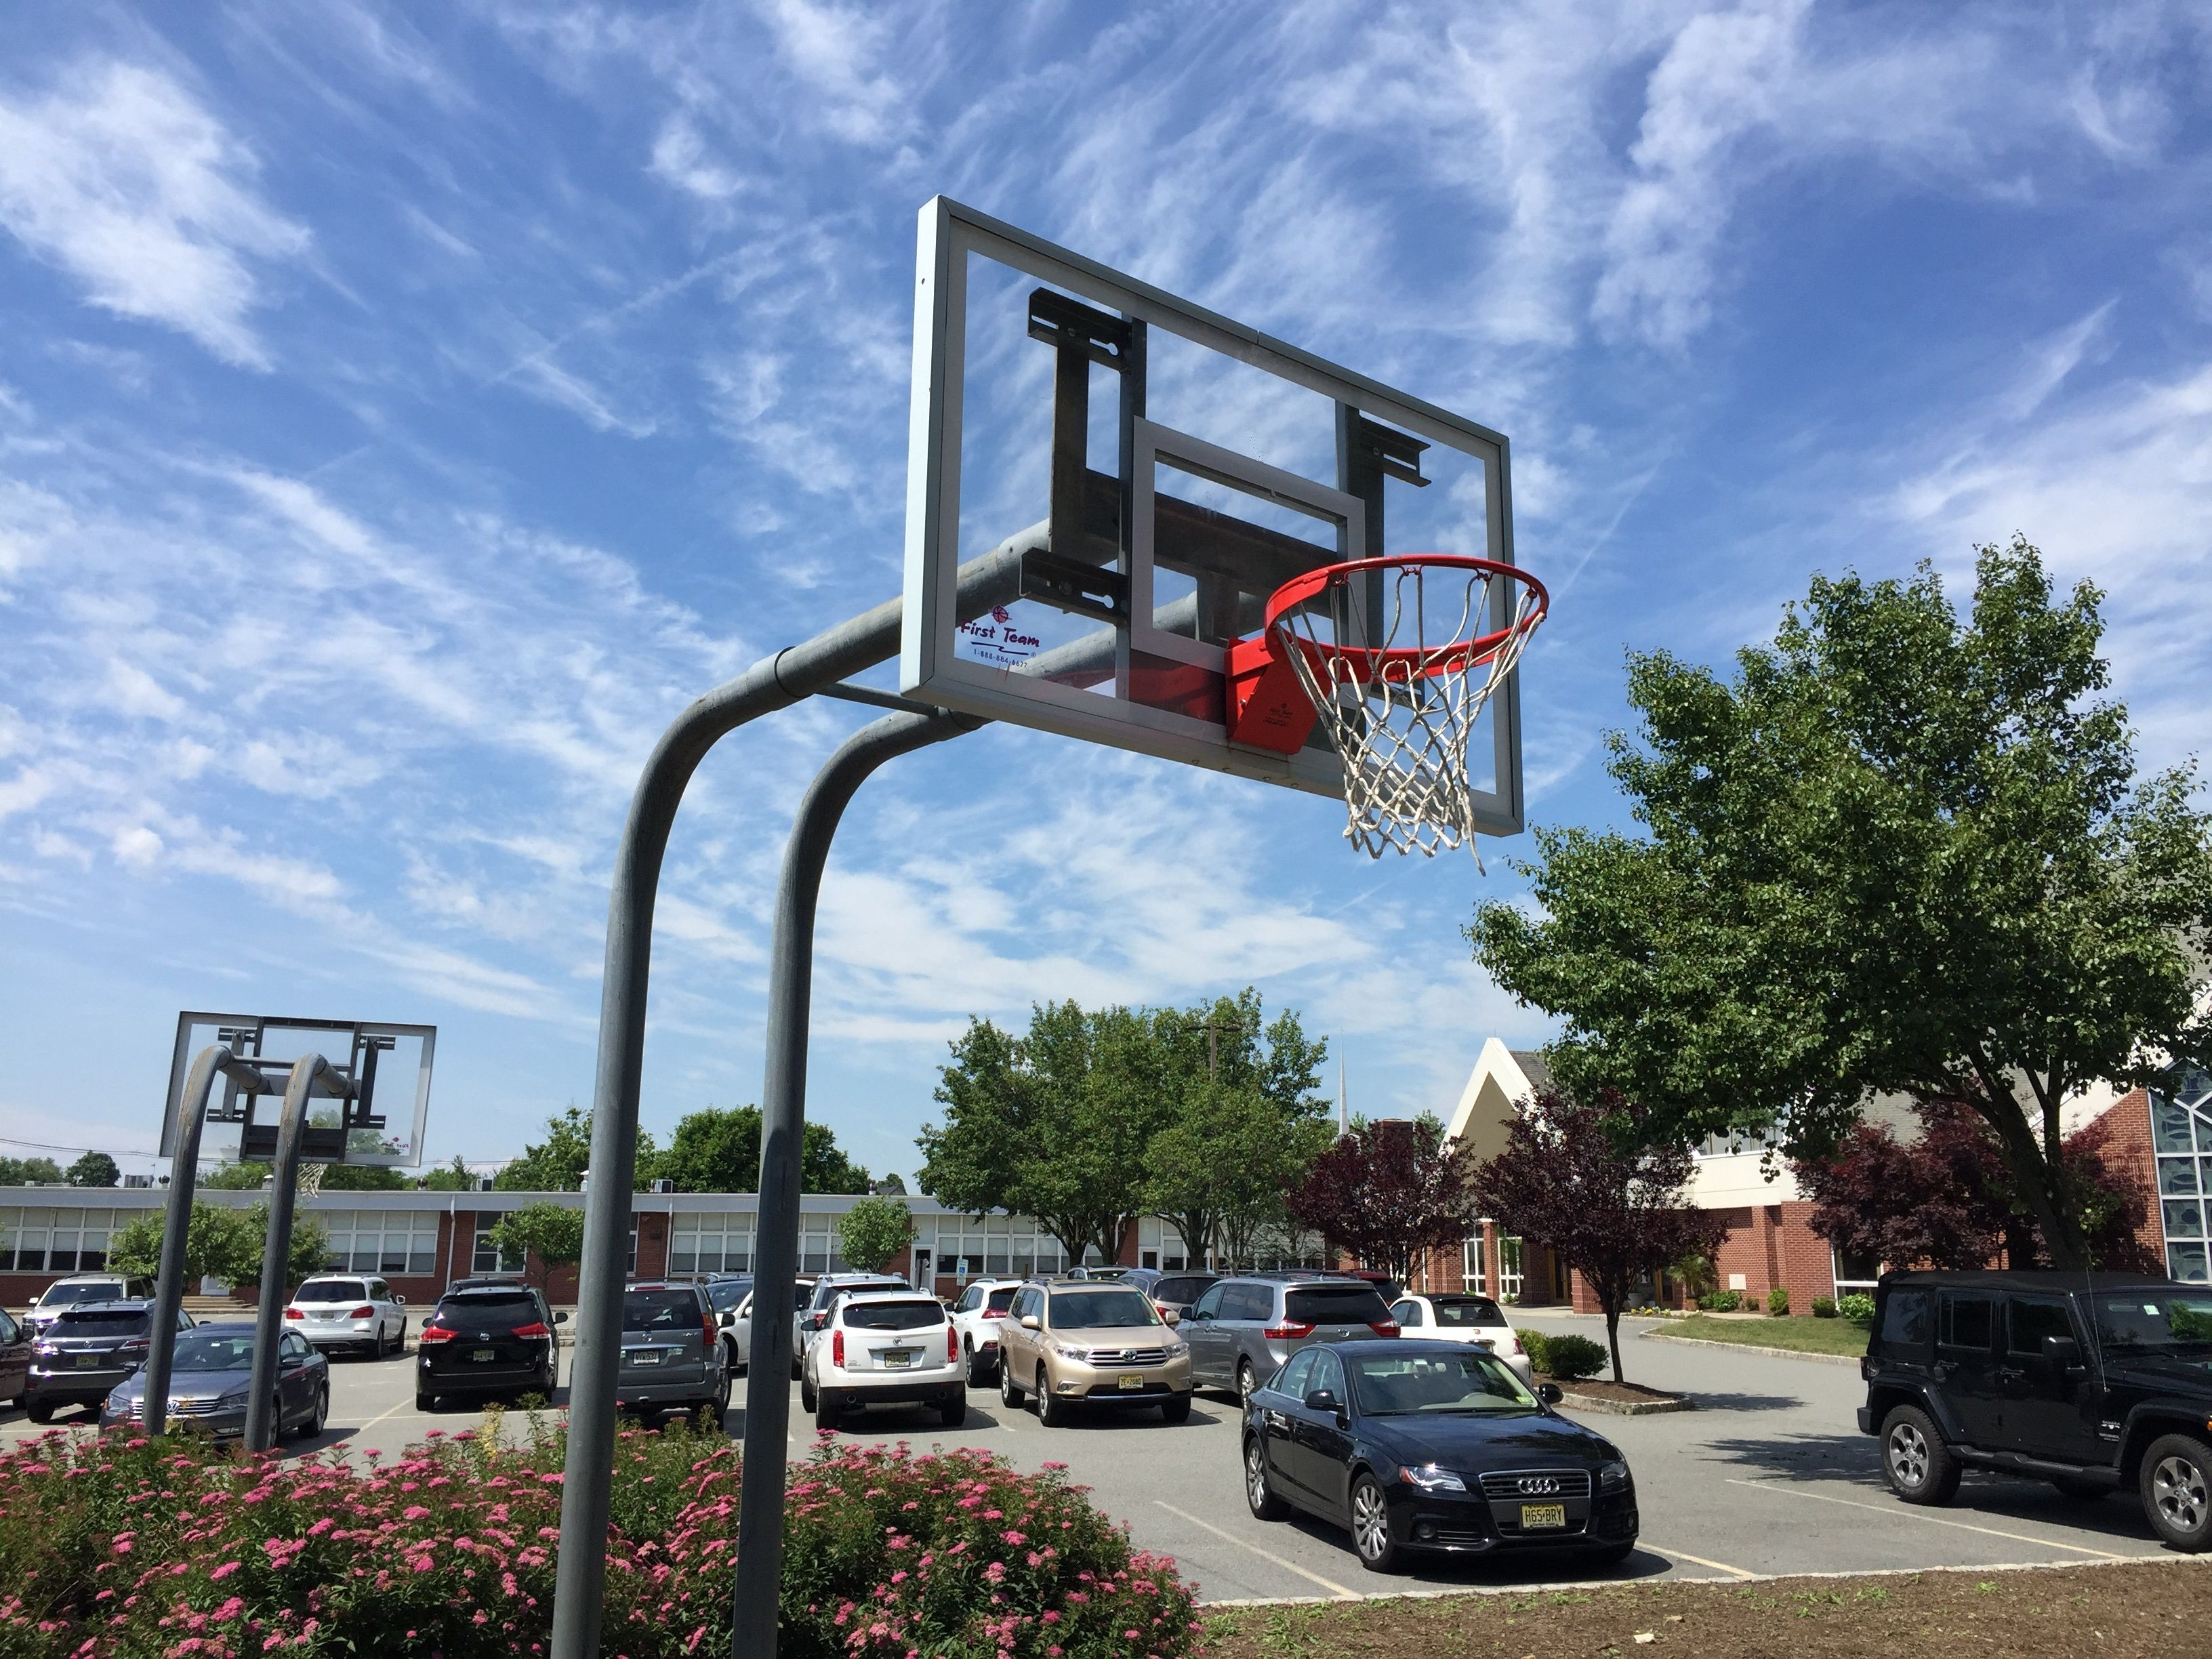 first team attack select adjustable basketball hoop in the driveway